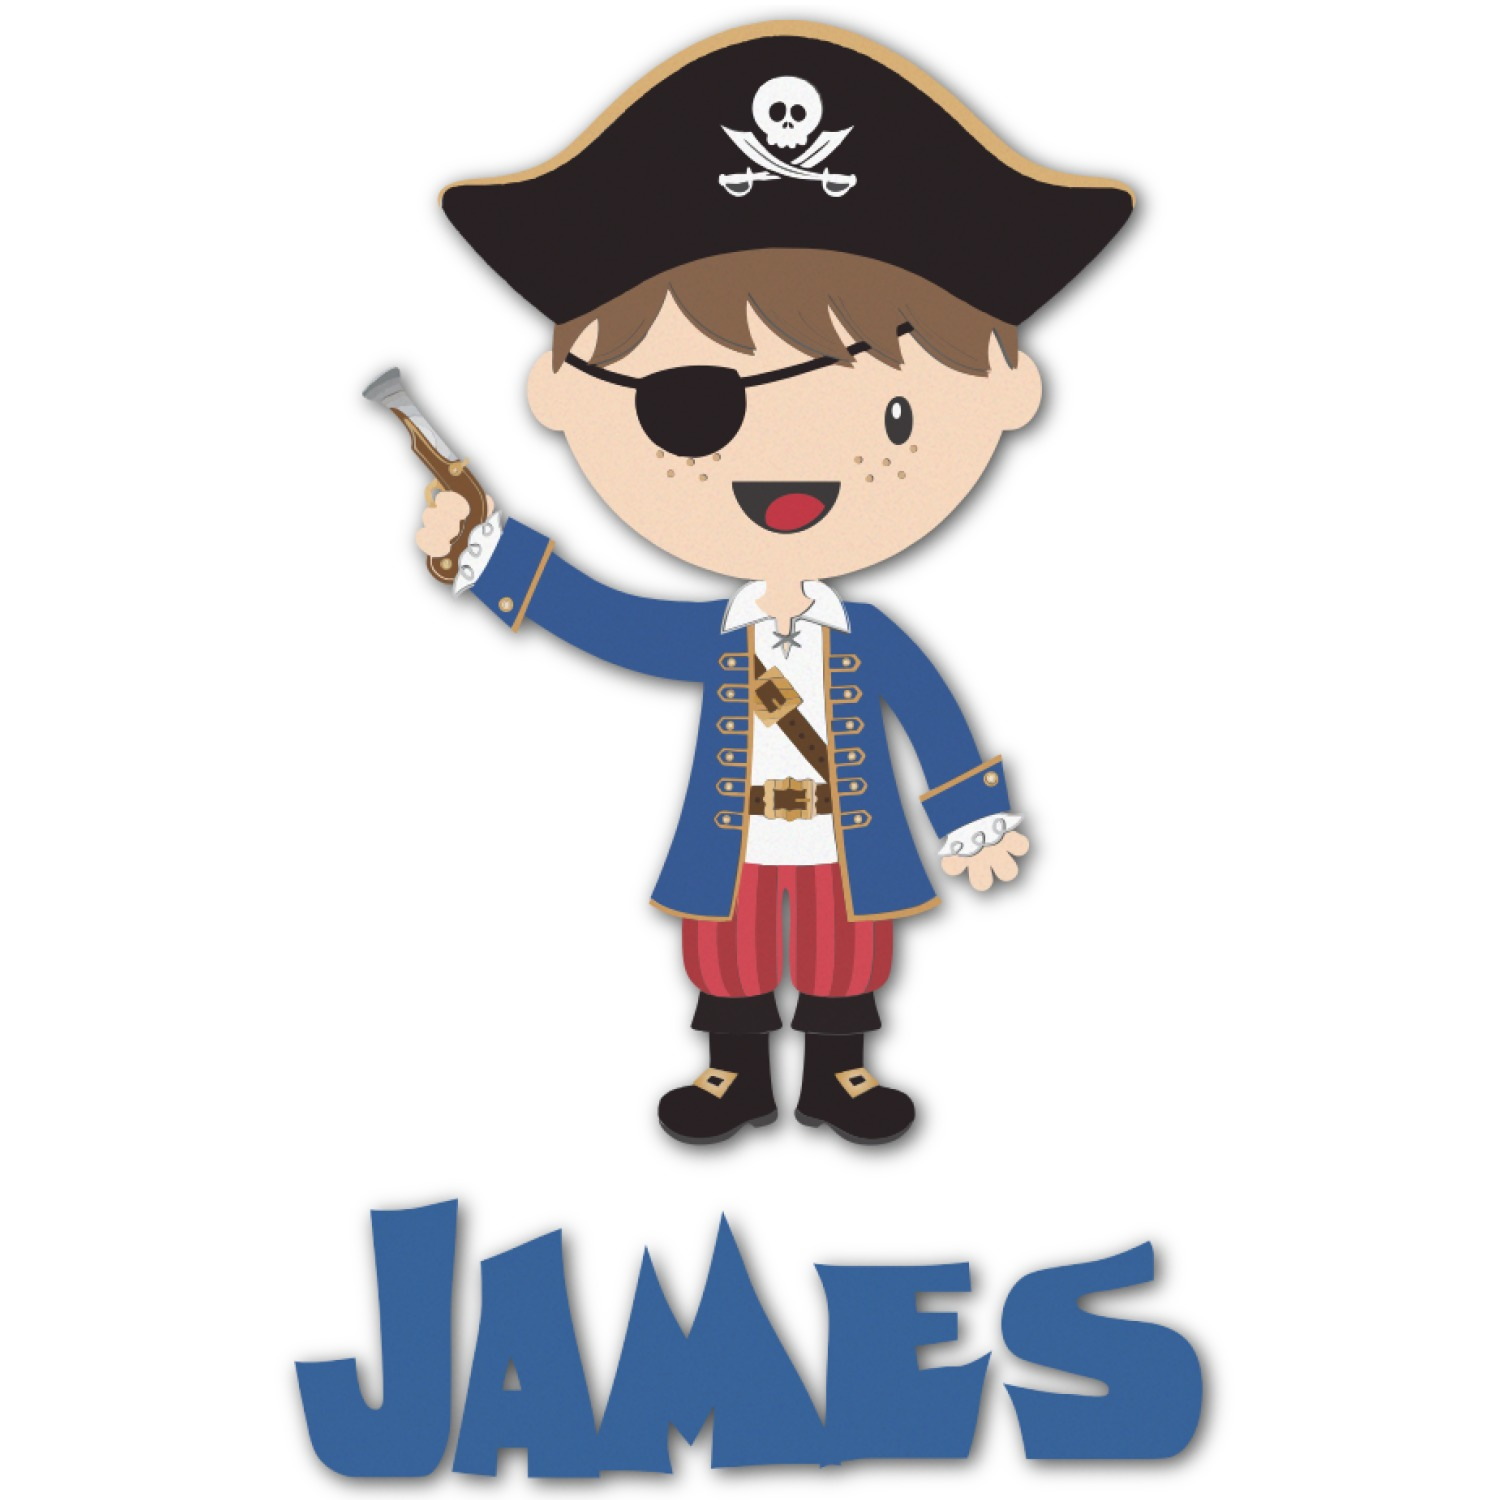 Pirates Kids Wall Decal: Blue Pirate Graphic Decal